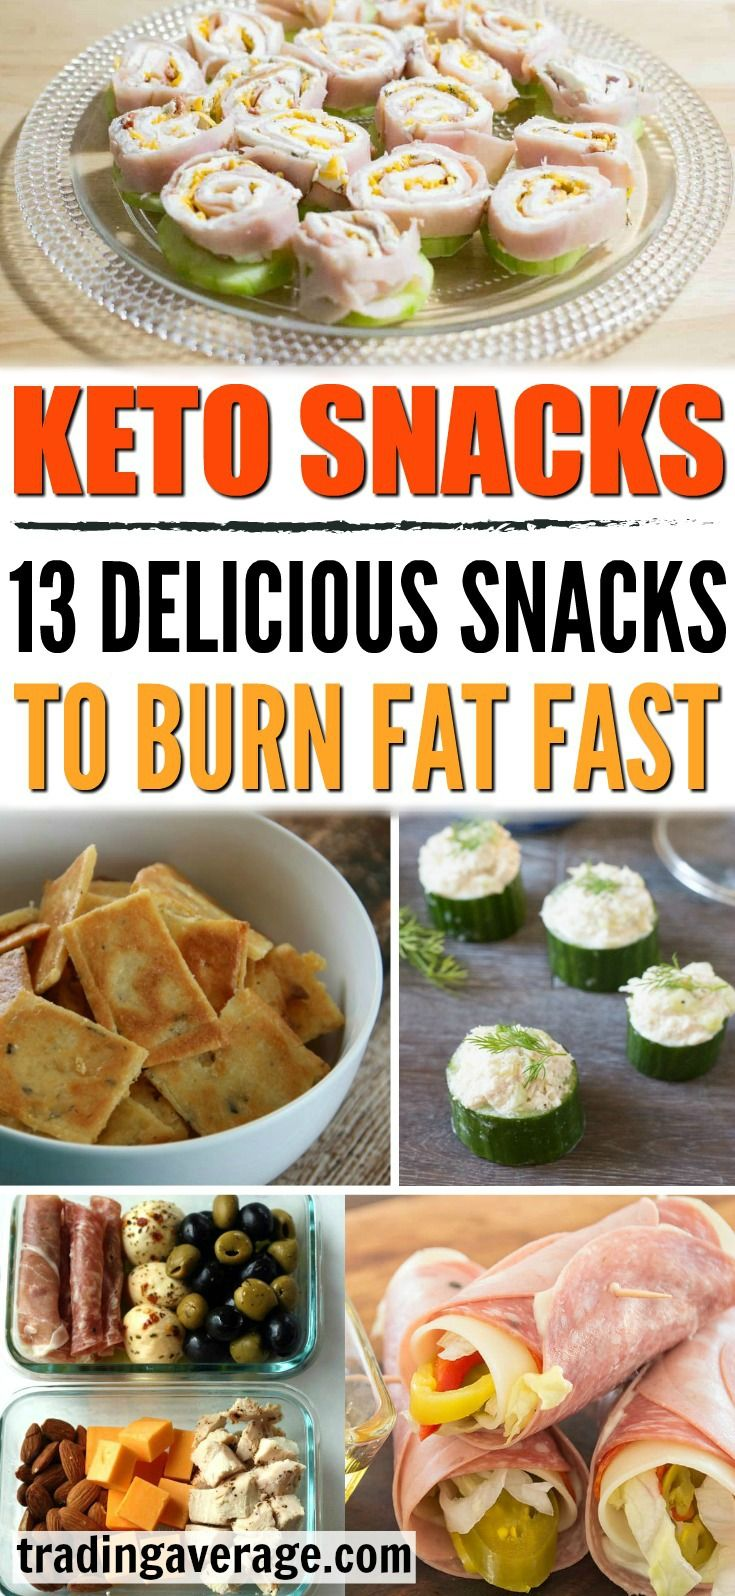 Keto Snacks: 13 Low Carb Snacks To Help You Burn Fat Fast images